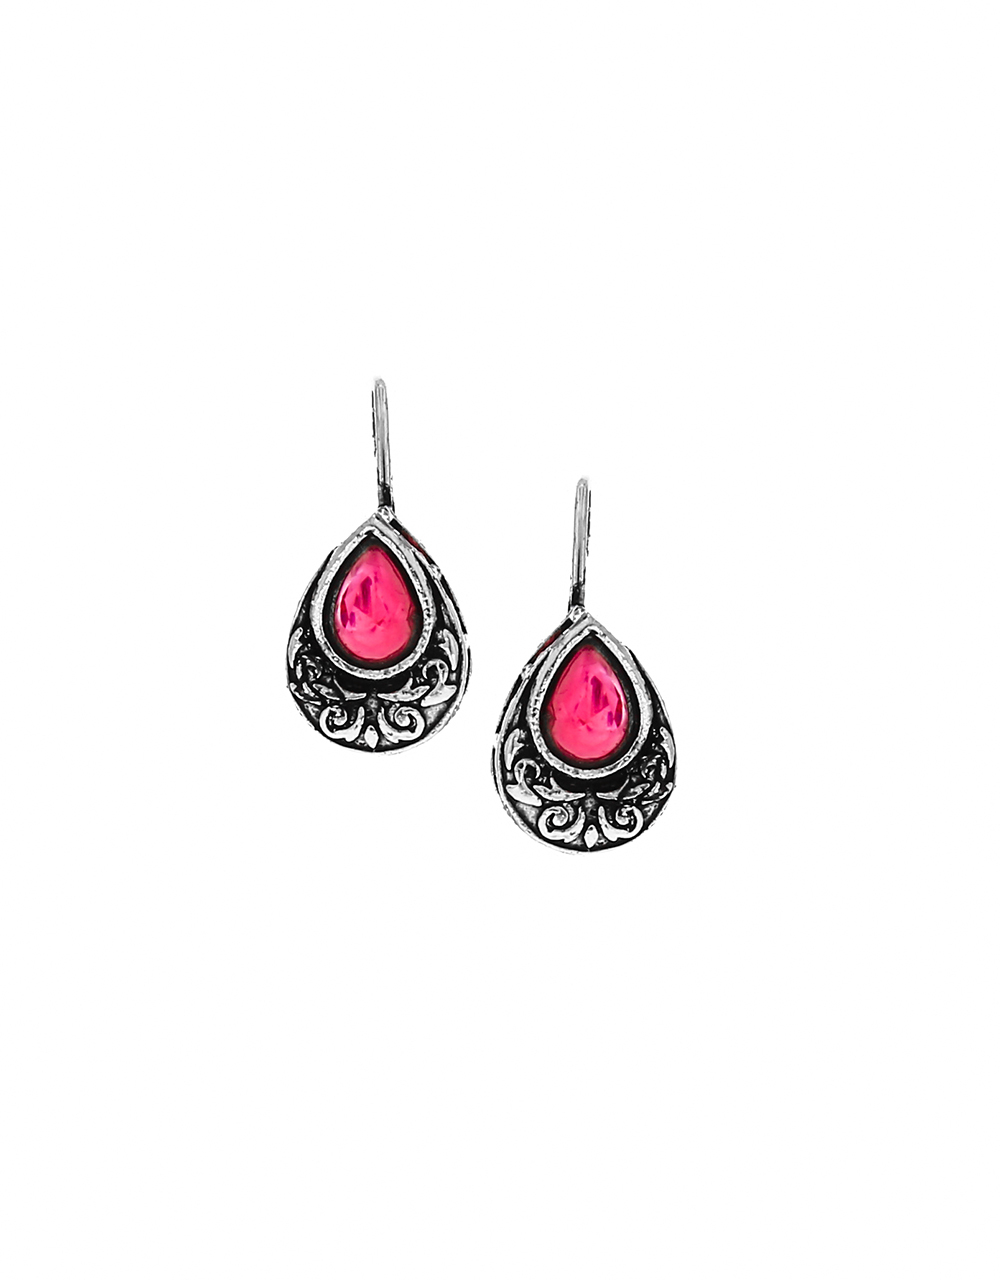 Simple and Delicate Silver Finish Oxidized Bugadi Earrings